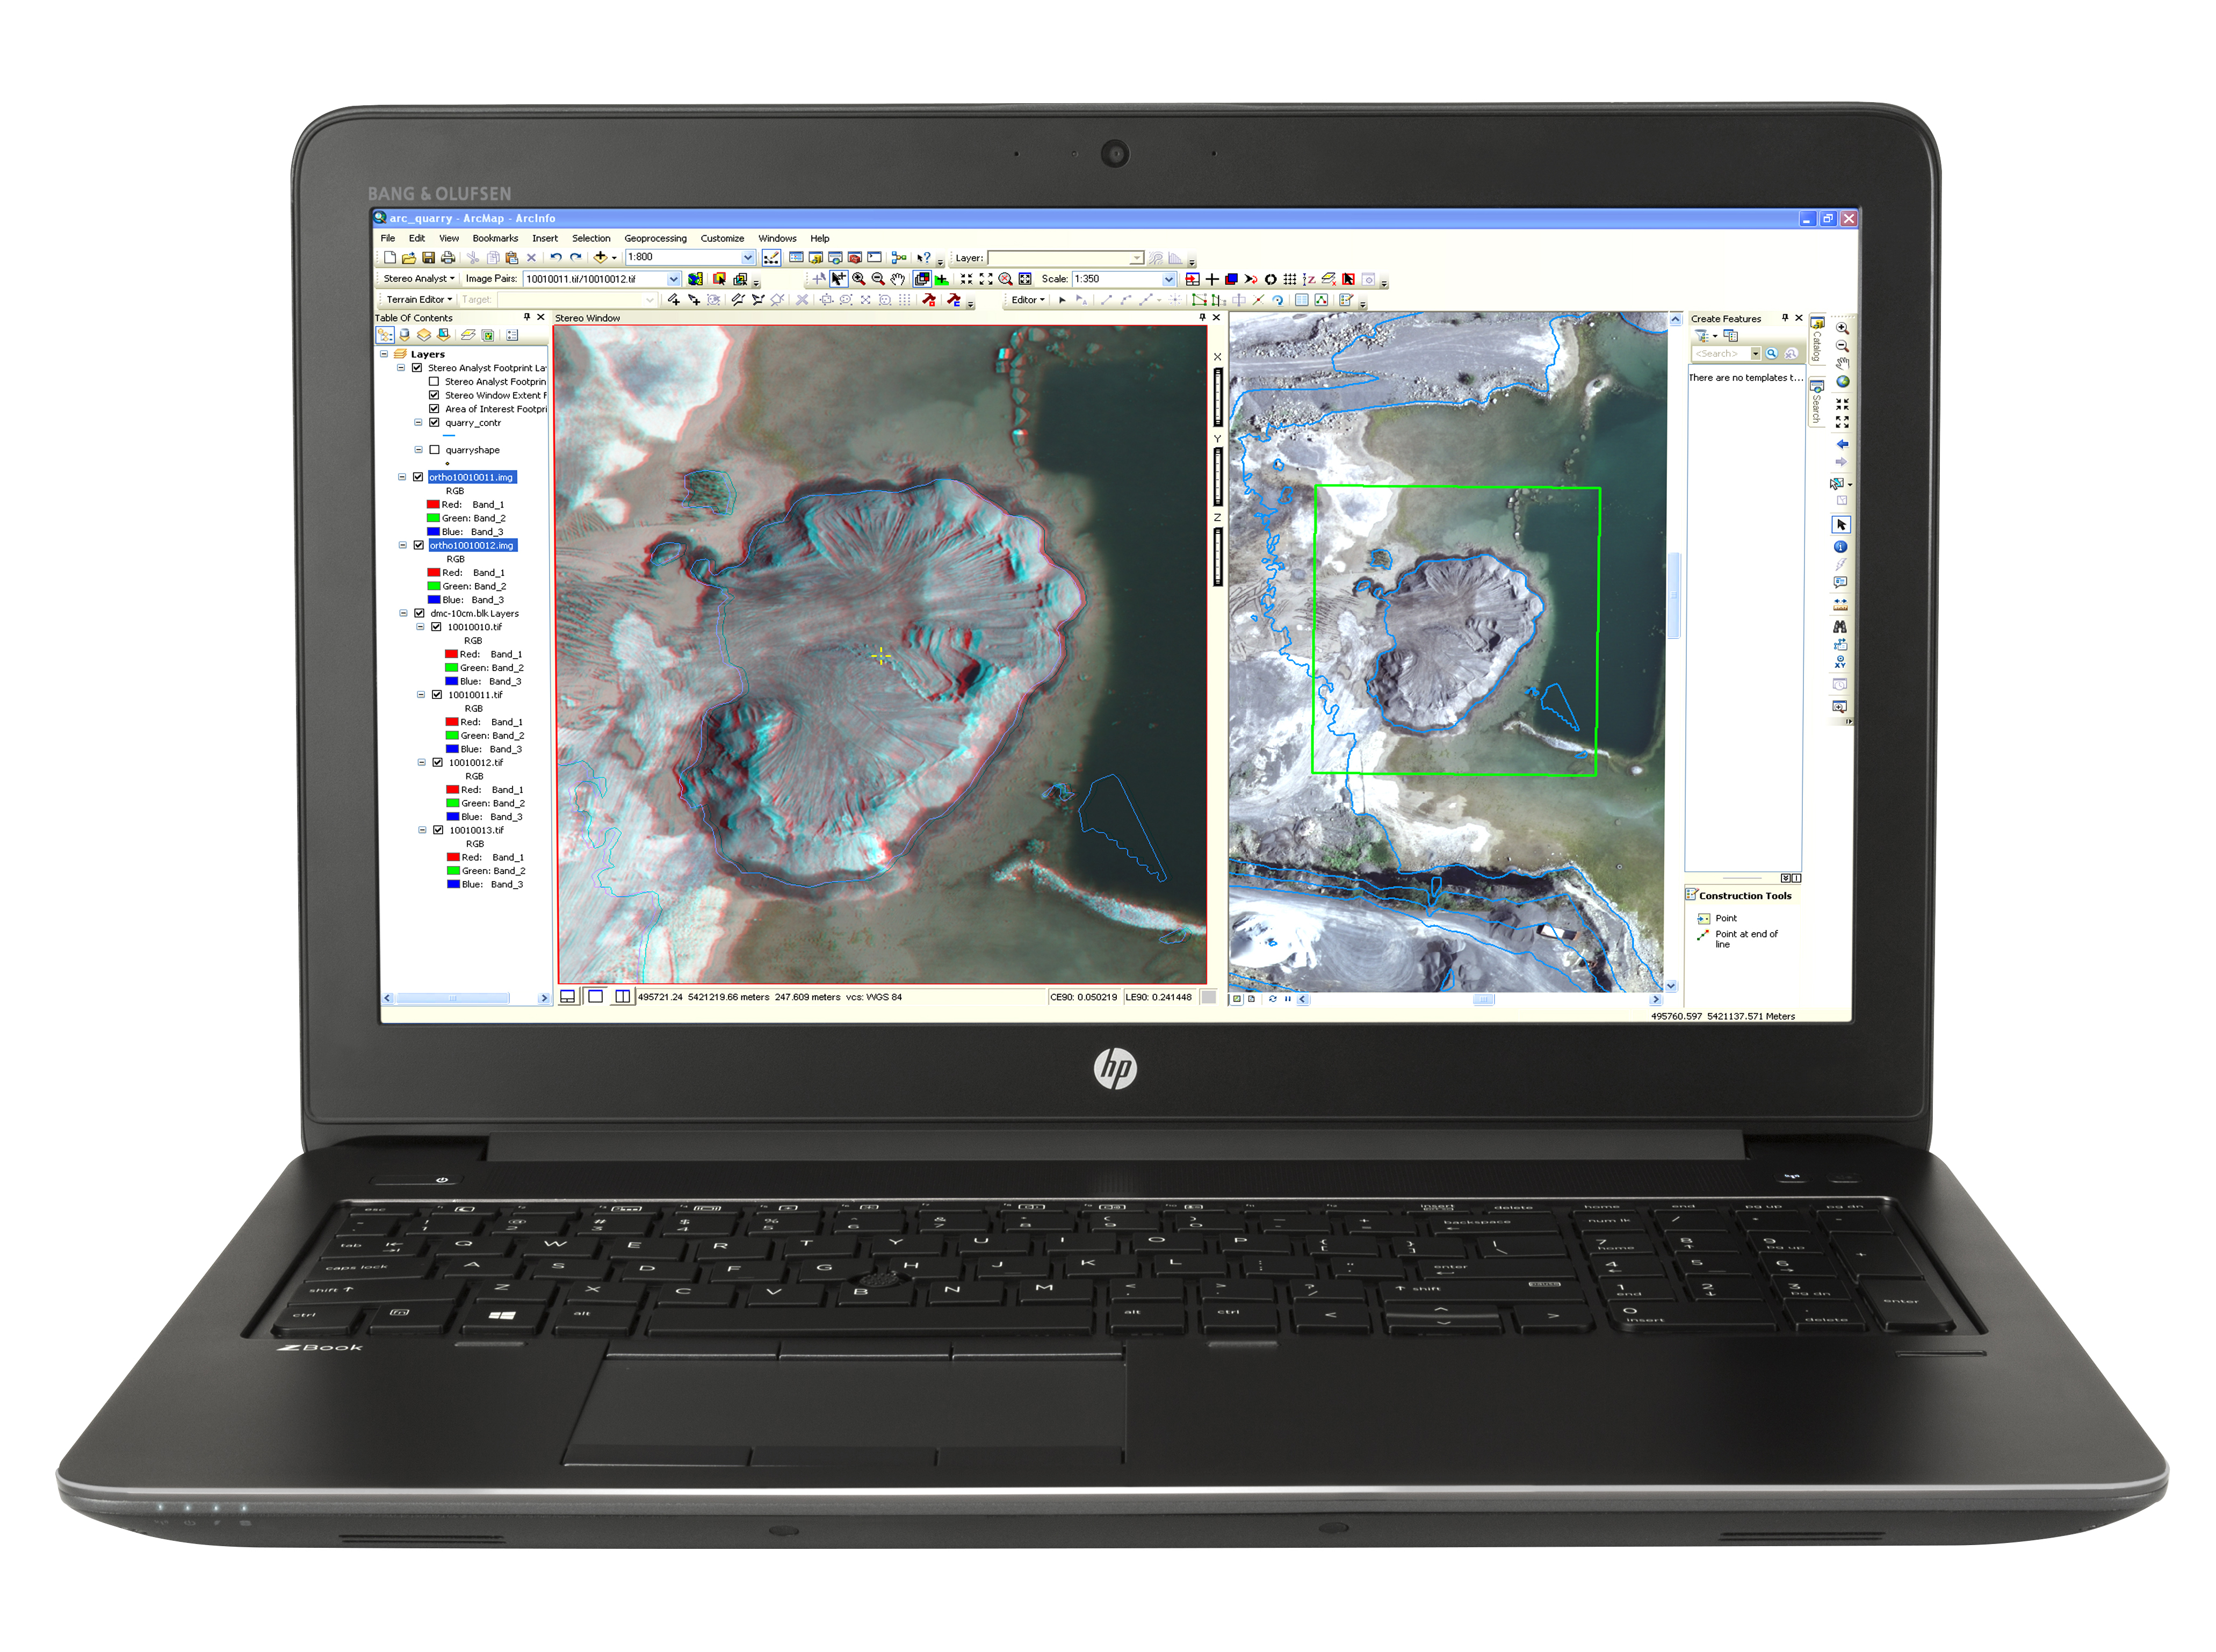 HP ZBook 15 G3 Mobile Workstation 0889899160343 T7V53ET 10_2M3KH15